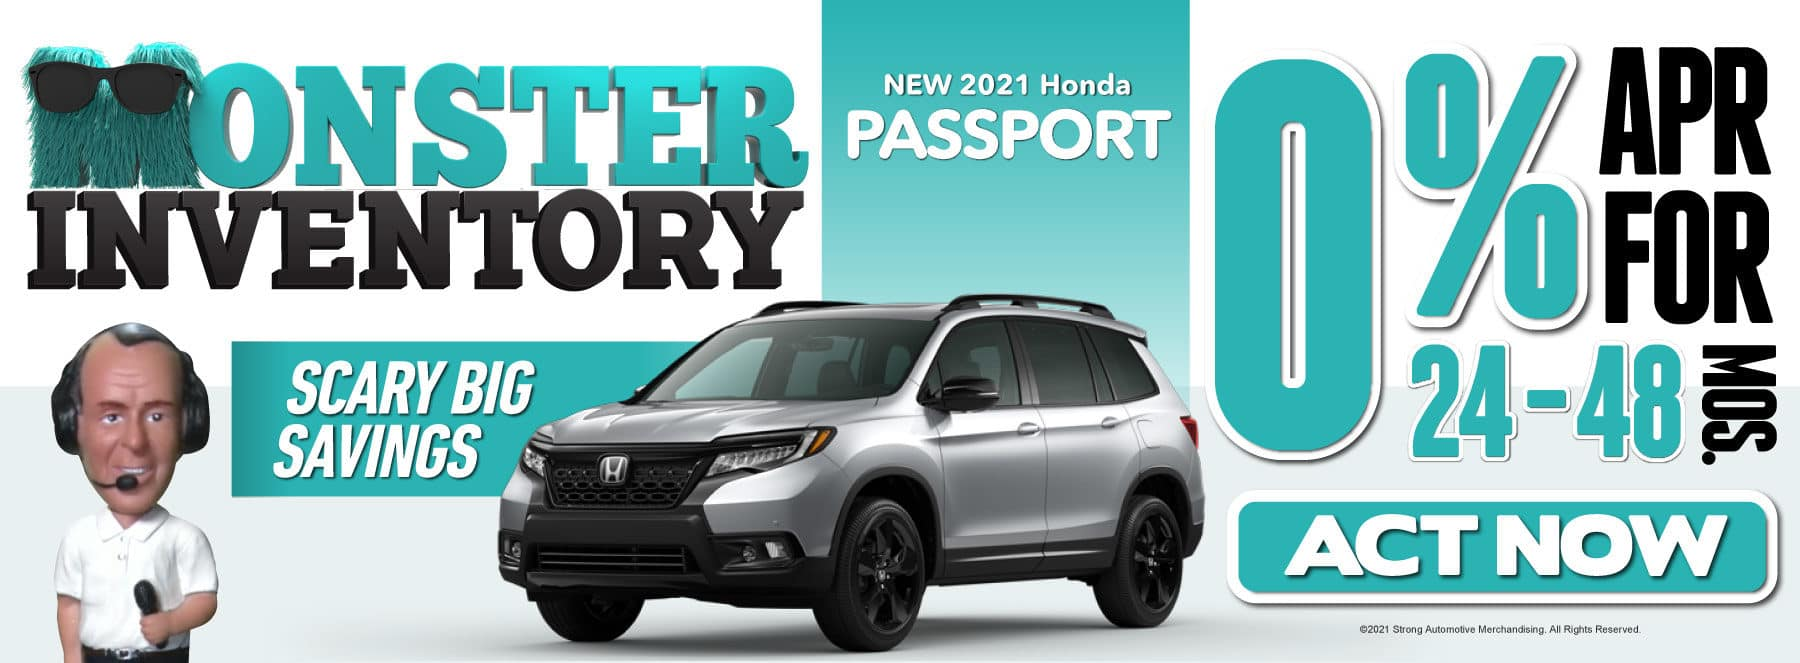 New 2021 Honda Passport - 0% APR for 24-48 Months — ACT NOW